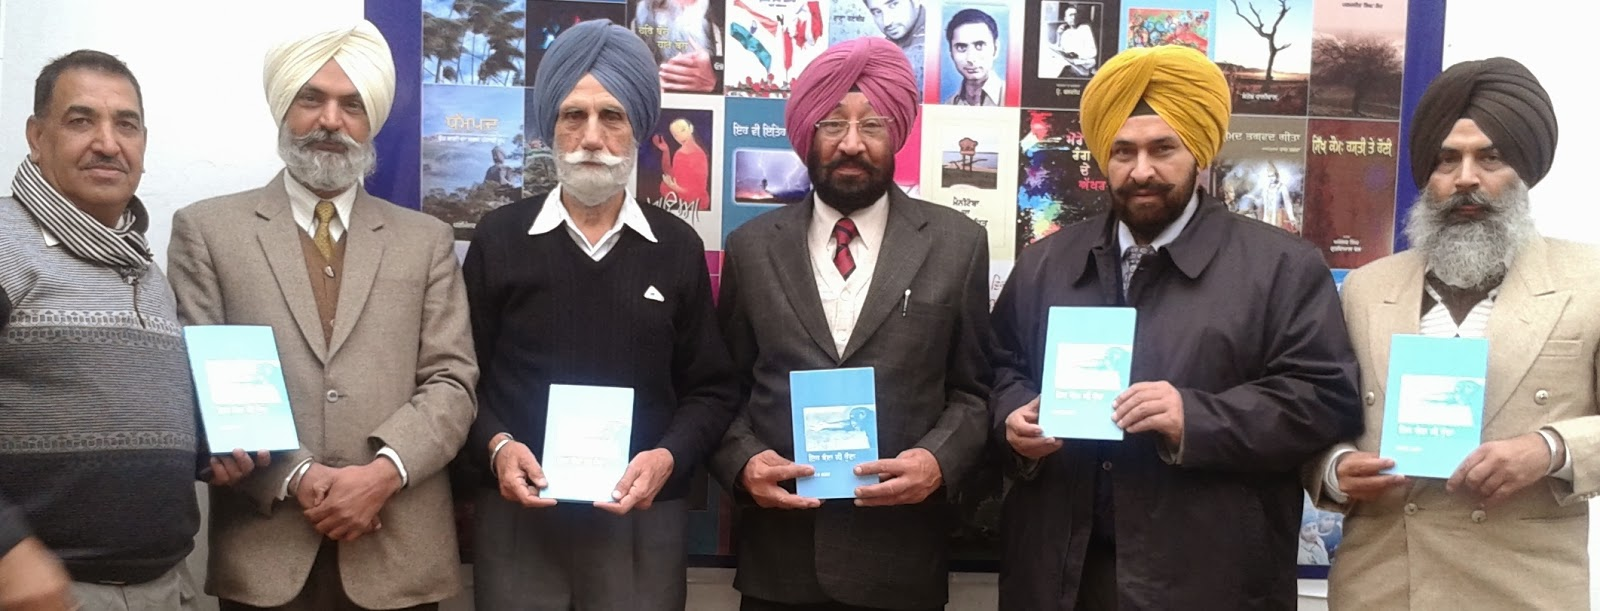 punjabi poetry book by jaswant zafar released